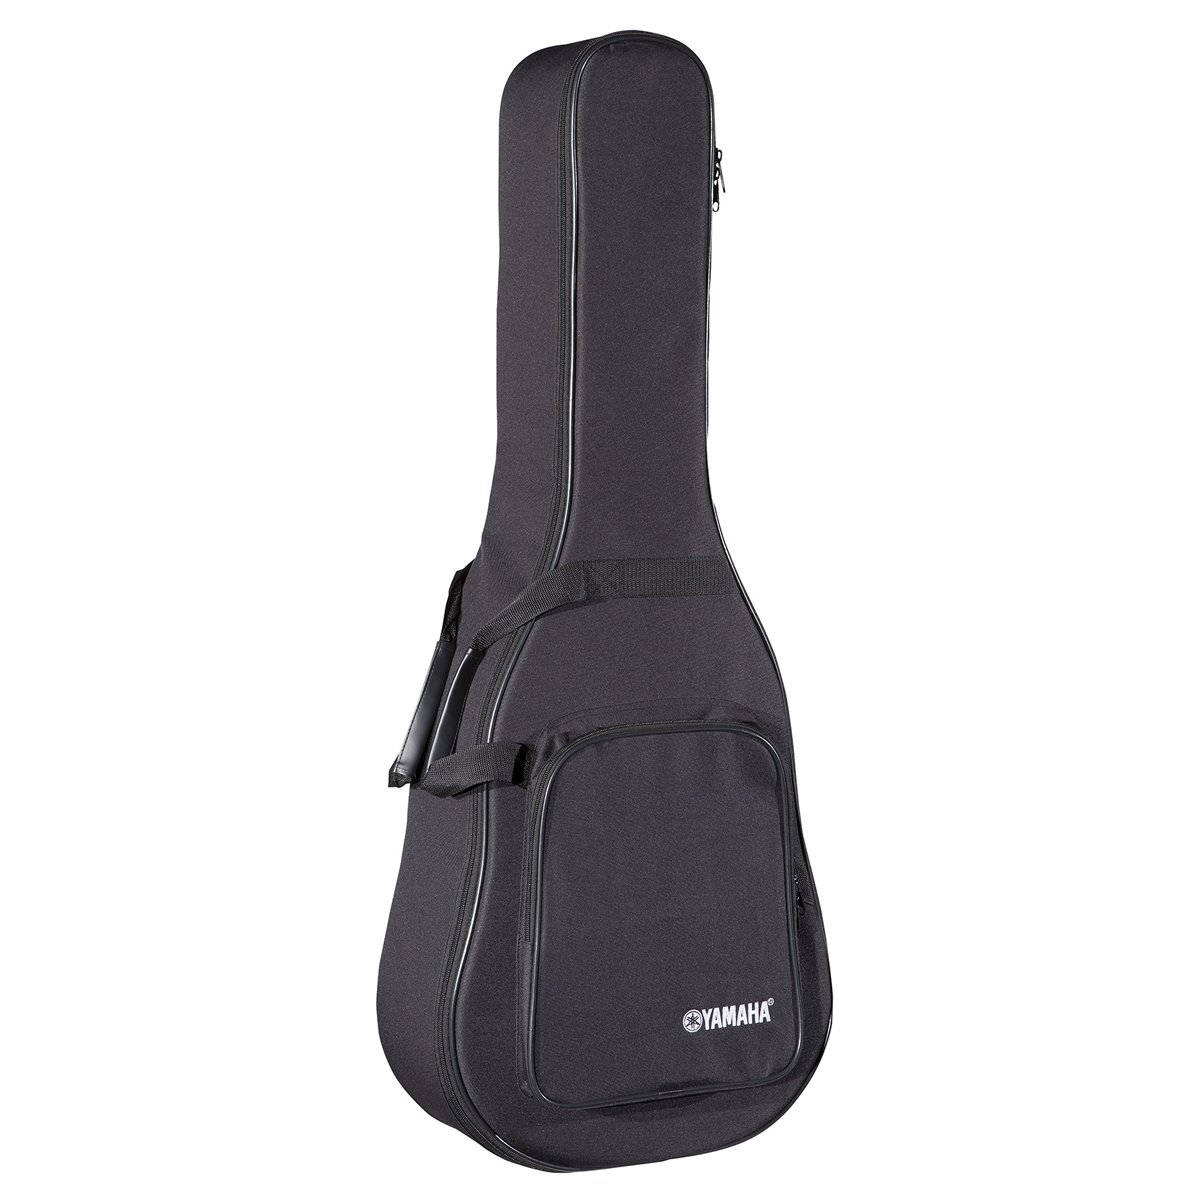 Yamaha AG2-HC Hardshell Acoustic Guitar Case for APX and NTX Series Yamaha PAC